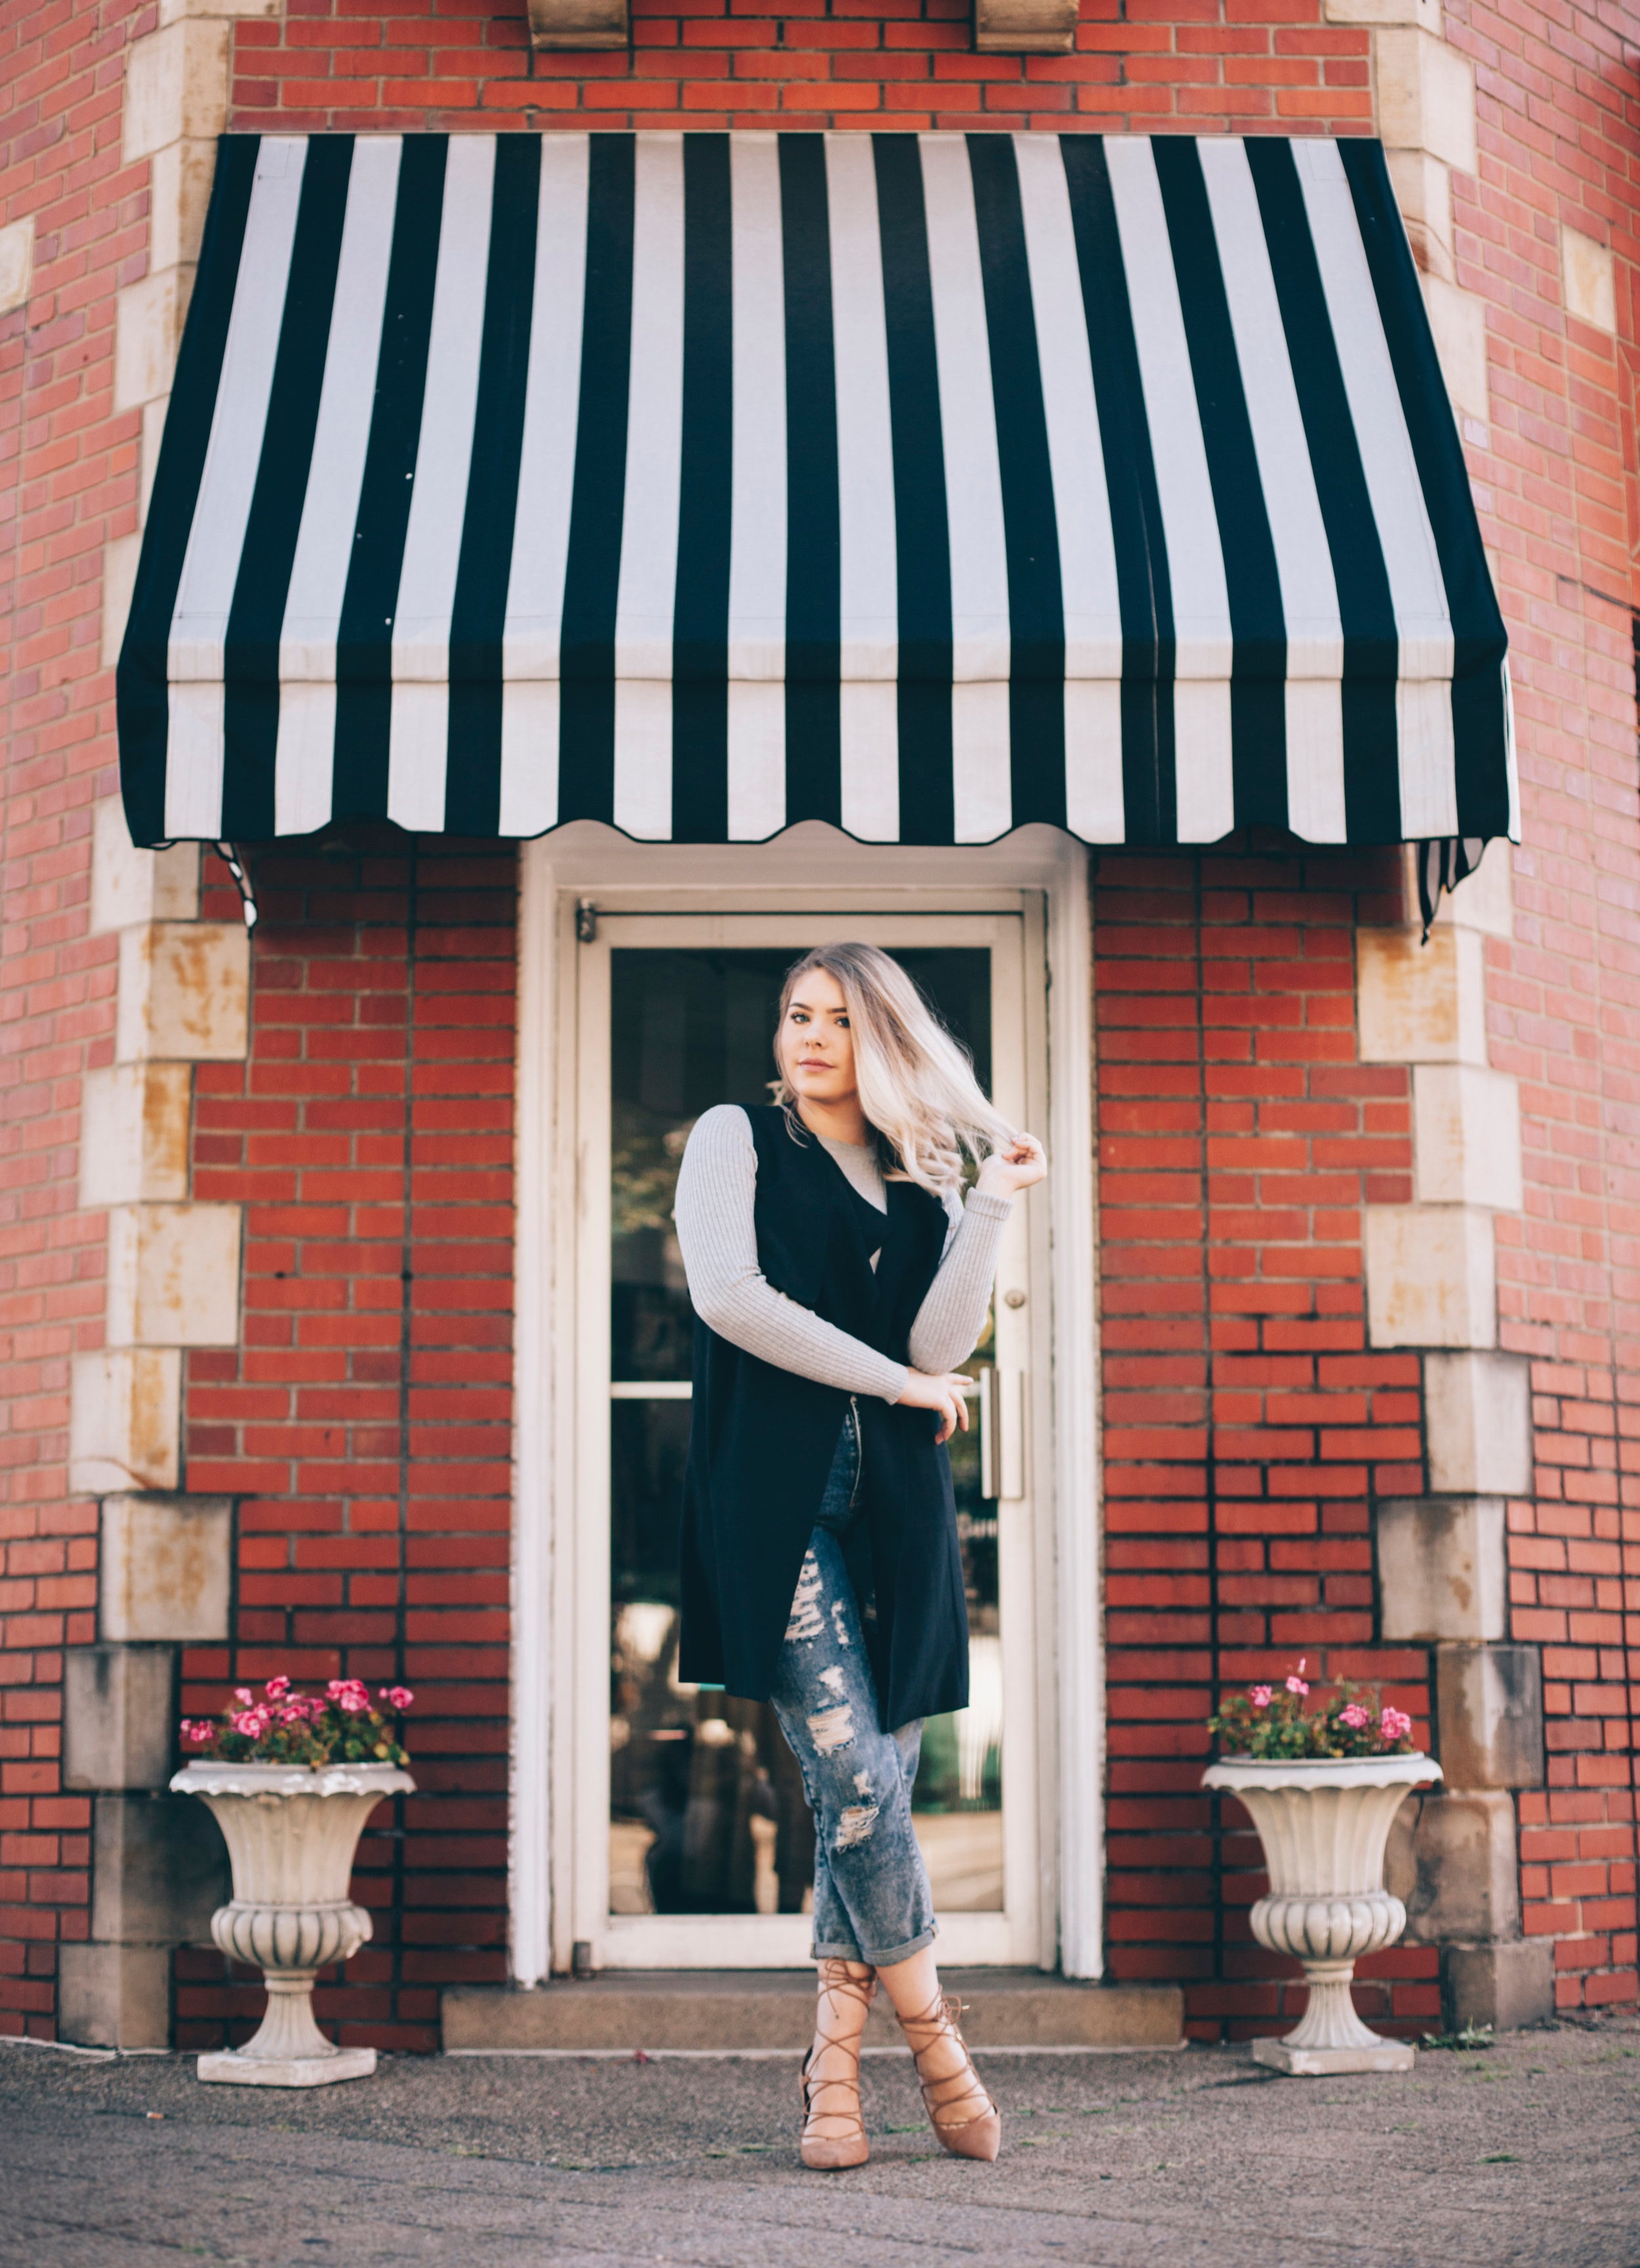 """""""I am just in love with her photography style"""" - Kristin is AMAZING. She did my senior pictures and she brought all of my ideas to life. I am just in love with her photography style. I can not recommend her enough.- Taylor, Carnegie PA"""